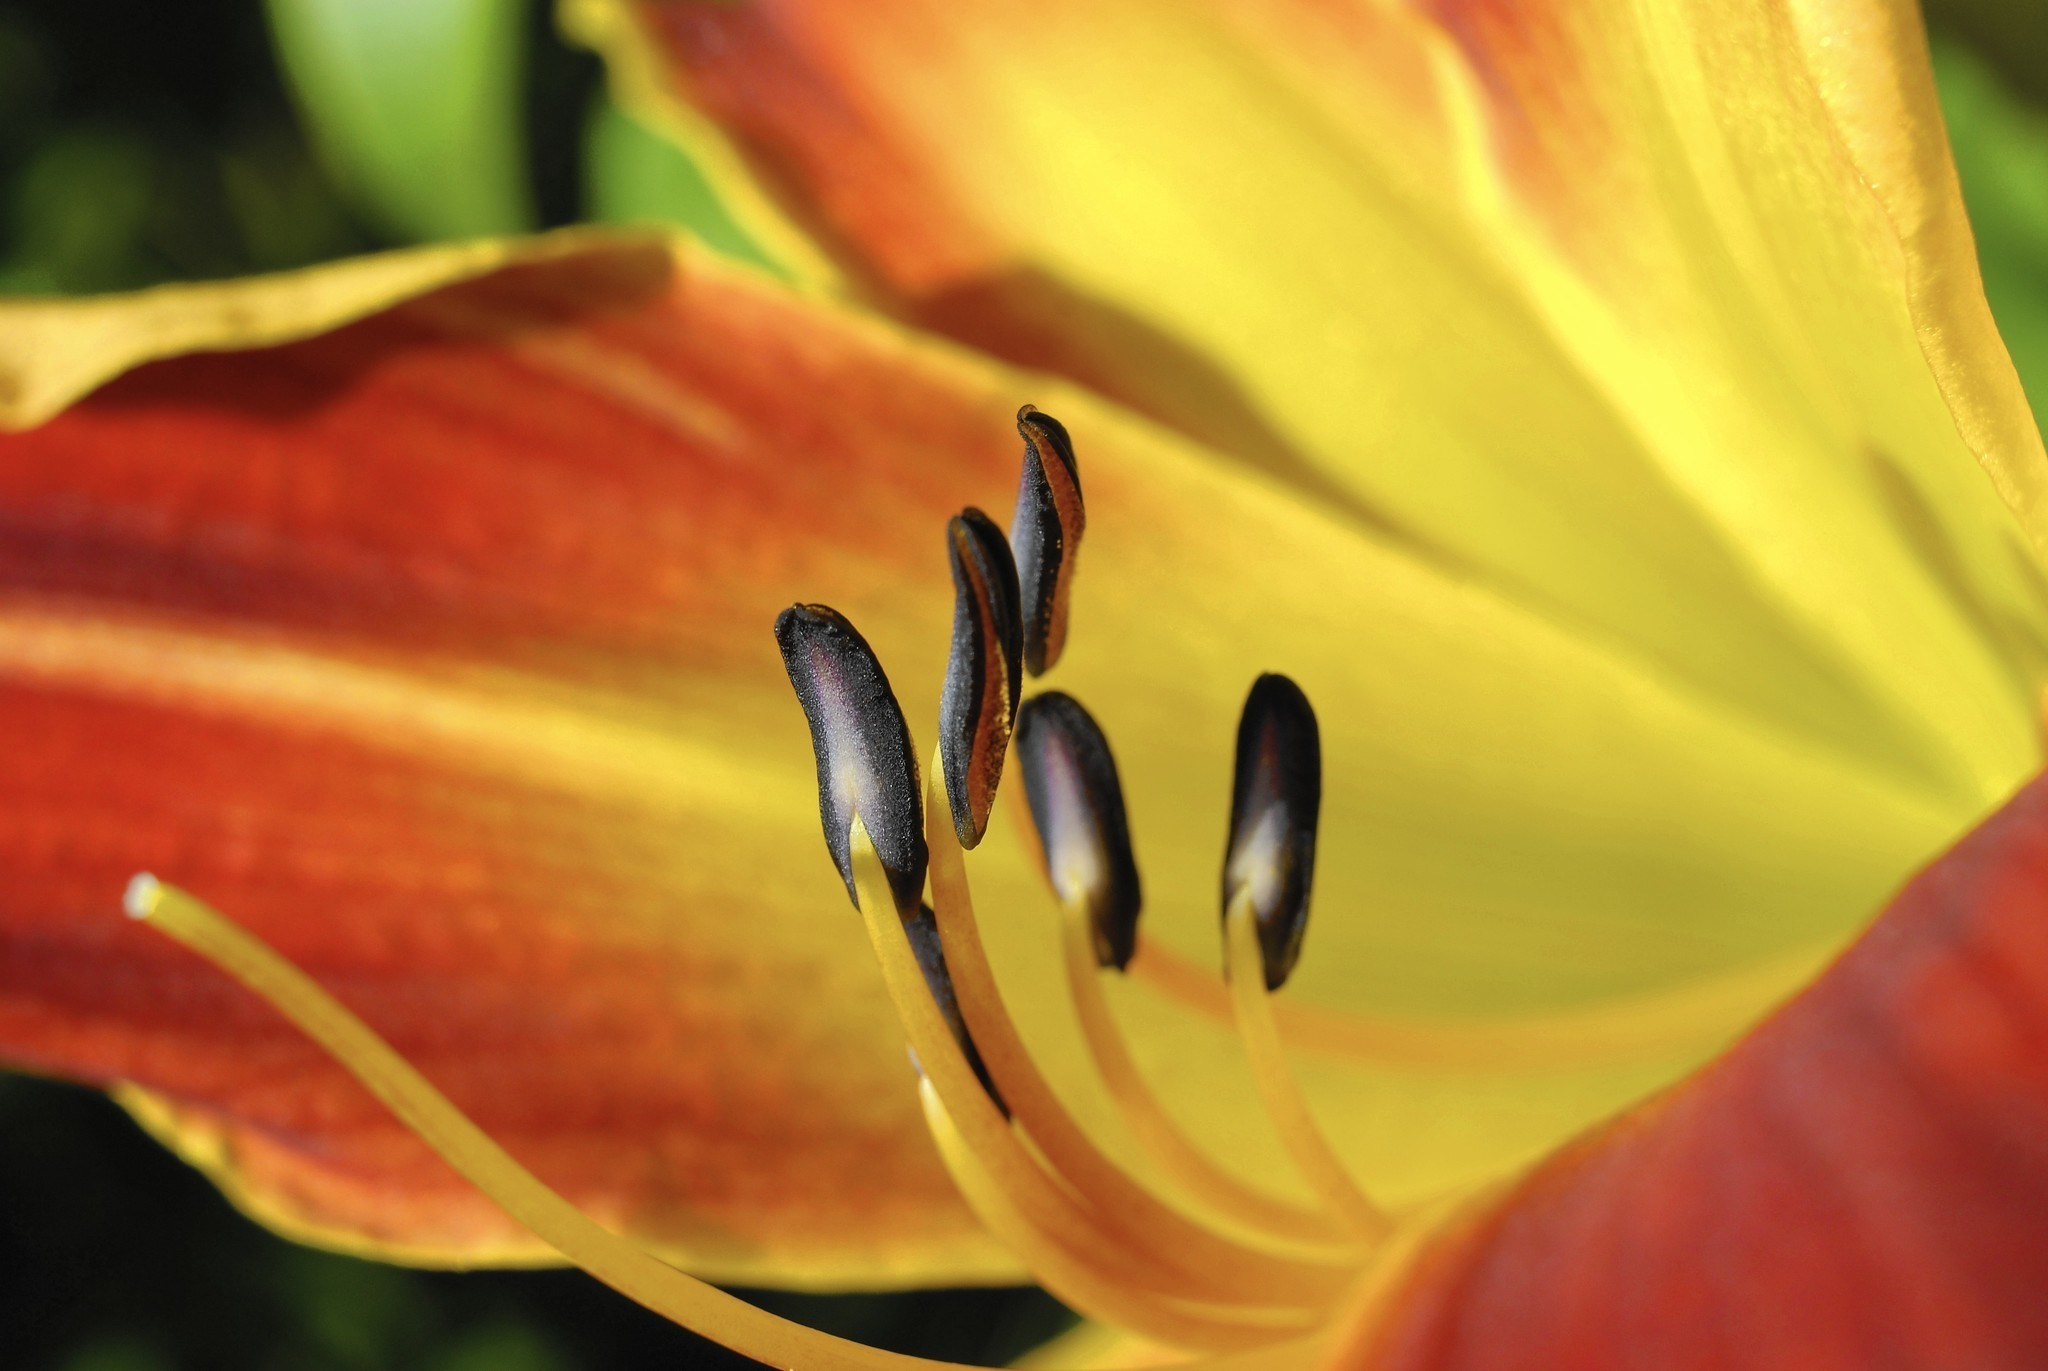 Those darn day lilies how to get rid of the orange blooming pest those darn day lilies how to get rid of the orange blooming pest chicago tribune izmirmasajfo